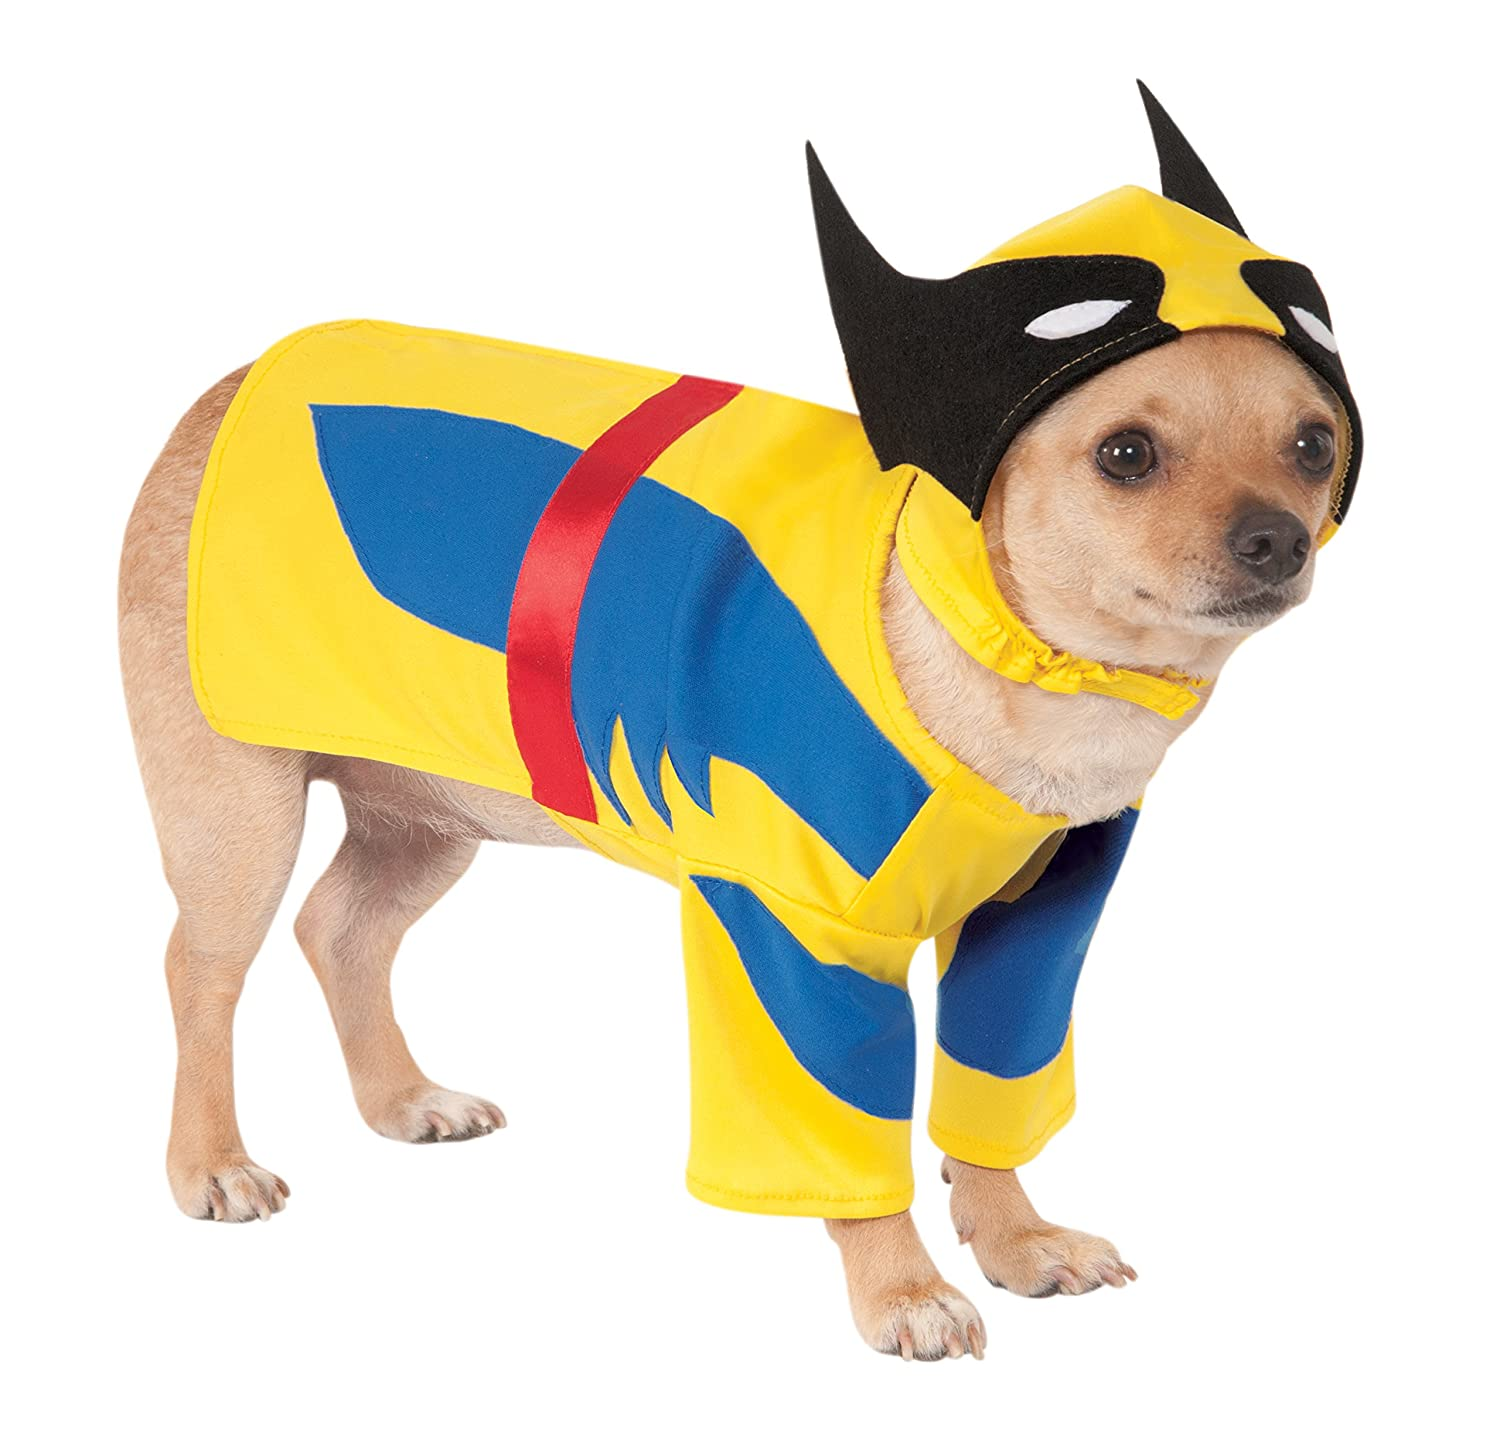 Amazon.com  Rubieu0027s Marvel Universe Wolverine Pet Costume Small  Pet Supplies  sc 1 st  Amazon.com & Amazon.com : Rubieu0027s Marvel Universe Wolverine Pet Costume Small ...